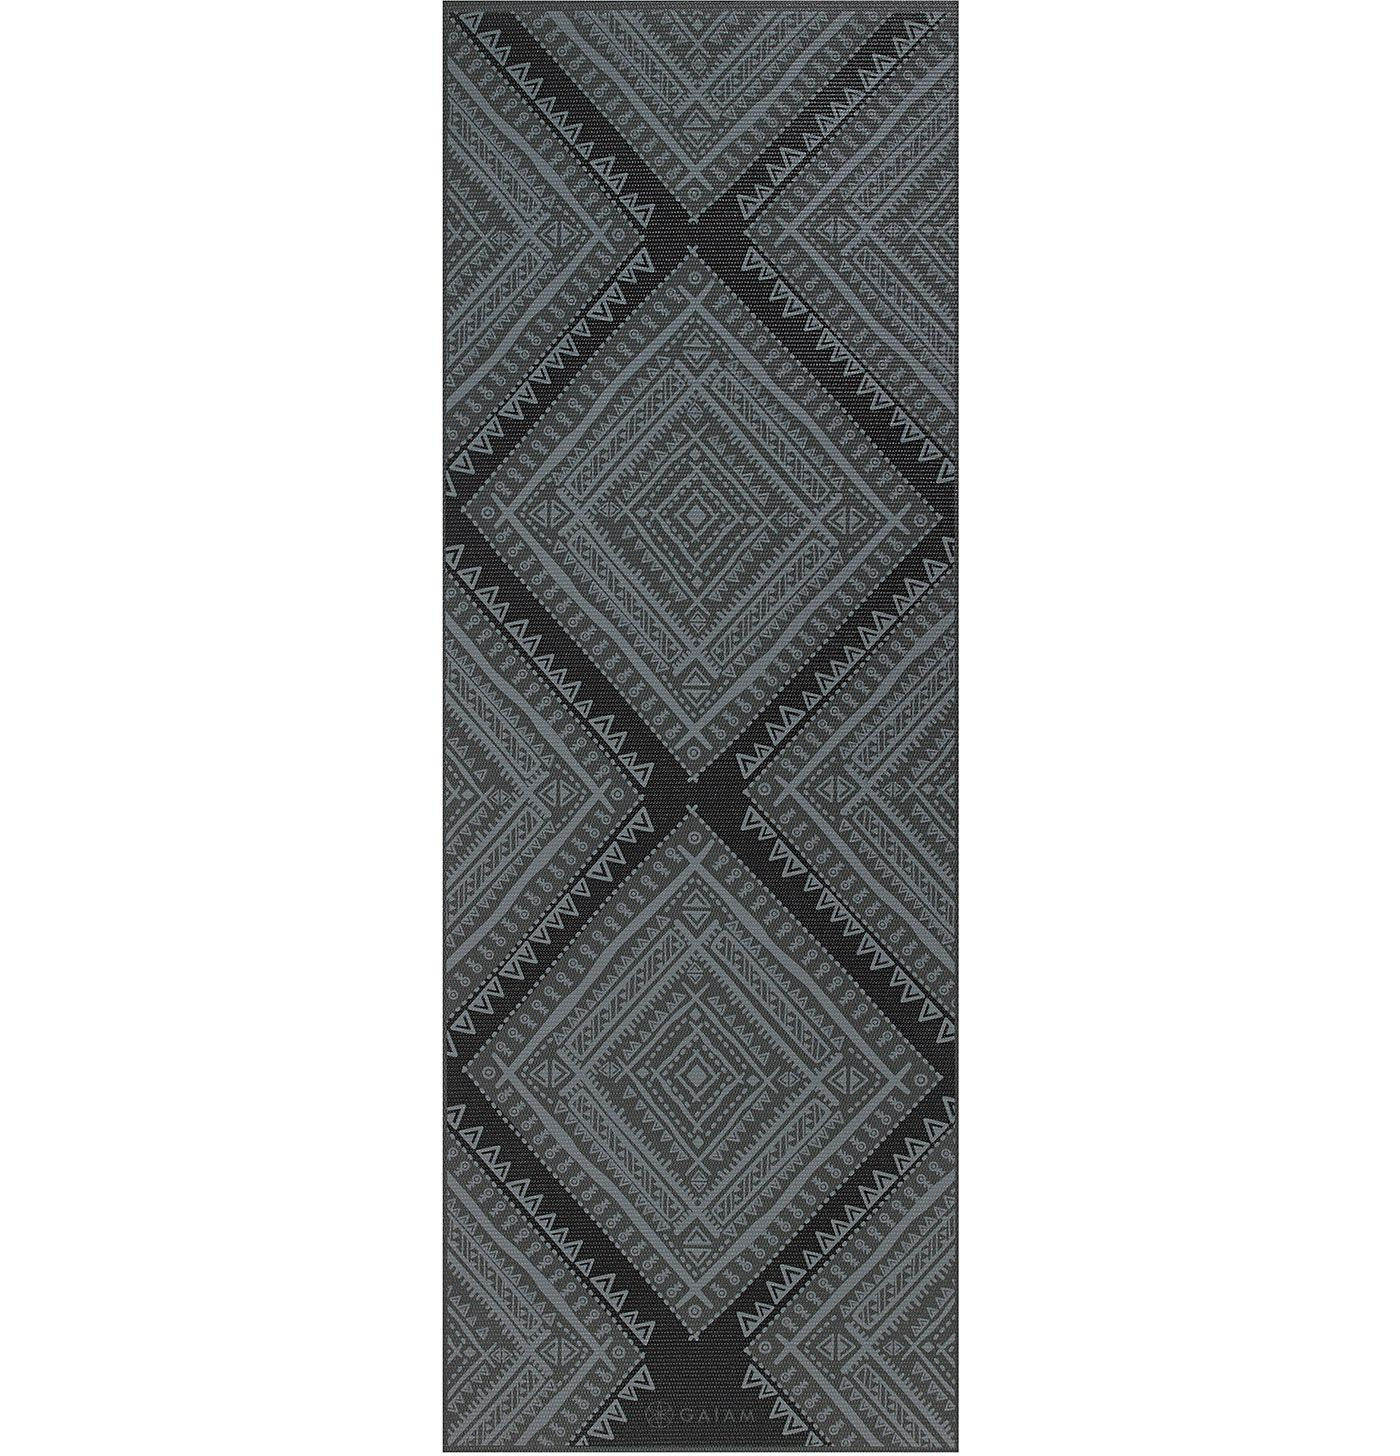 Gaiam Premium Print 5mm Yoga Mat